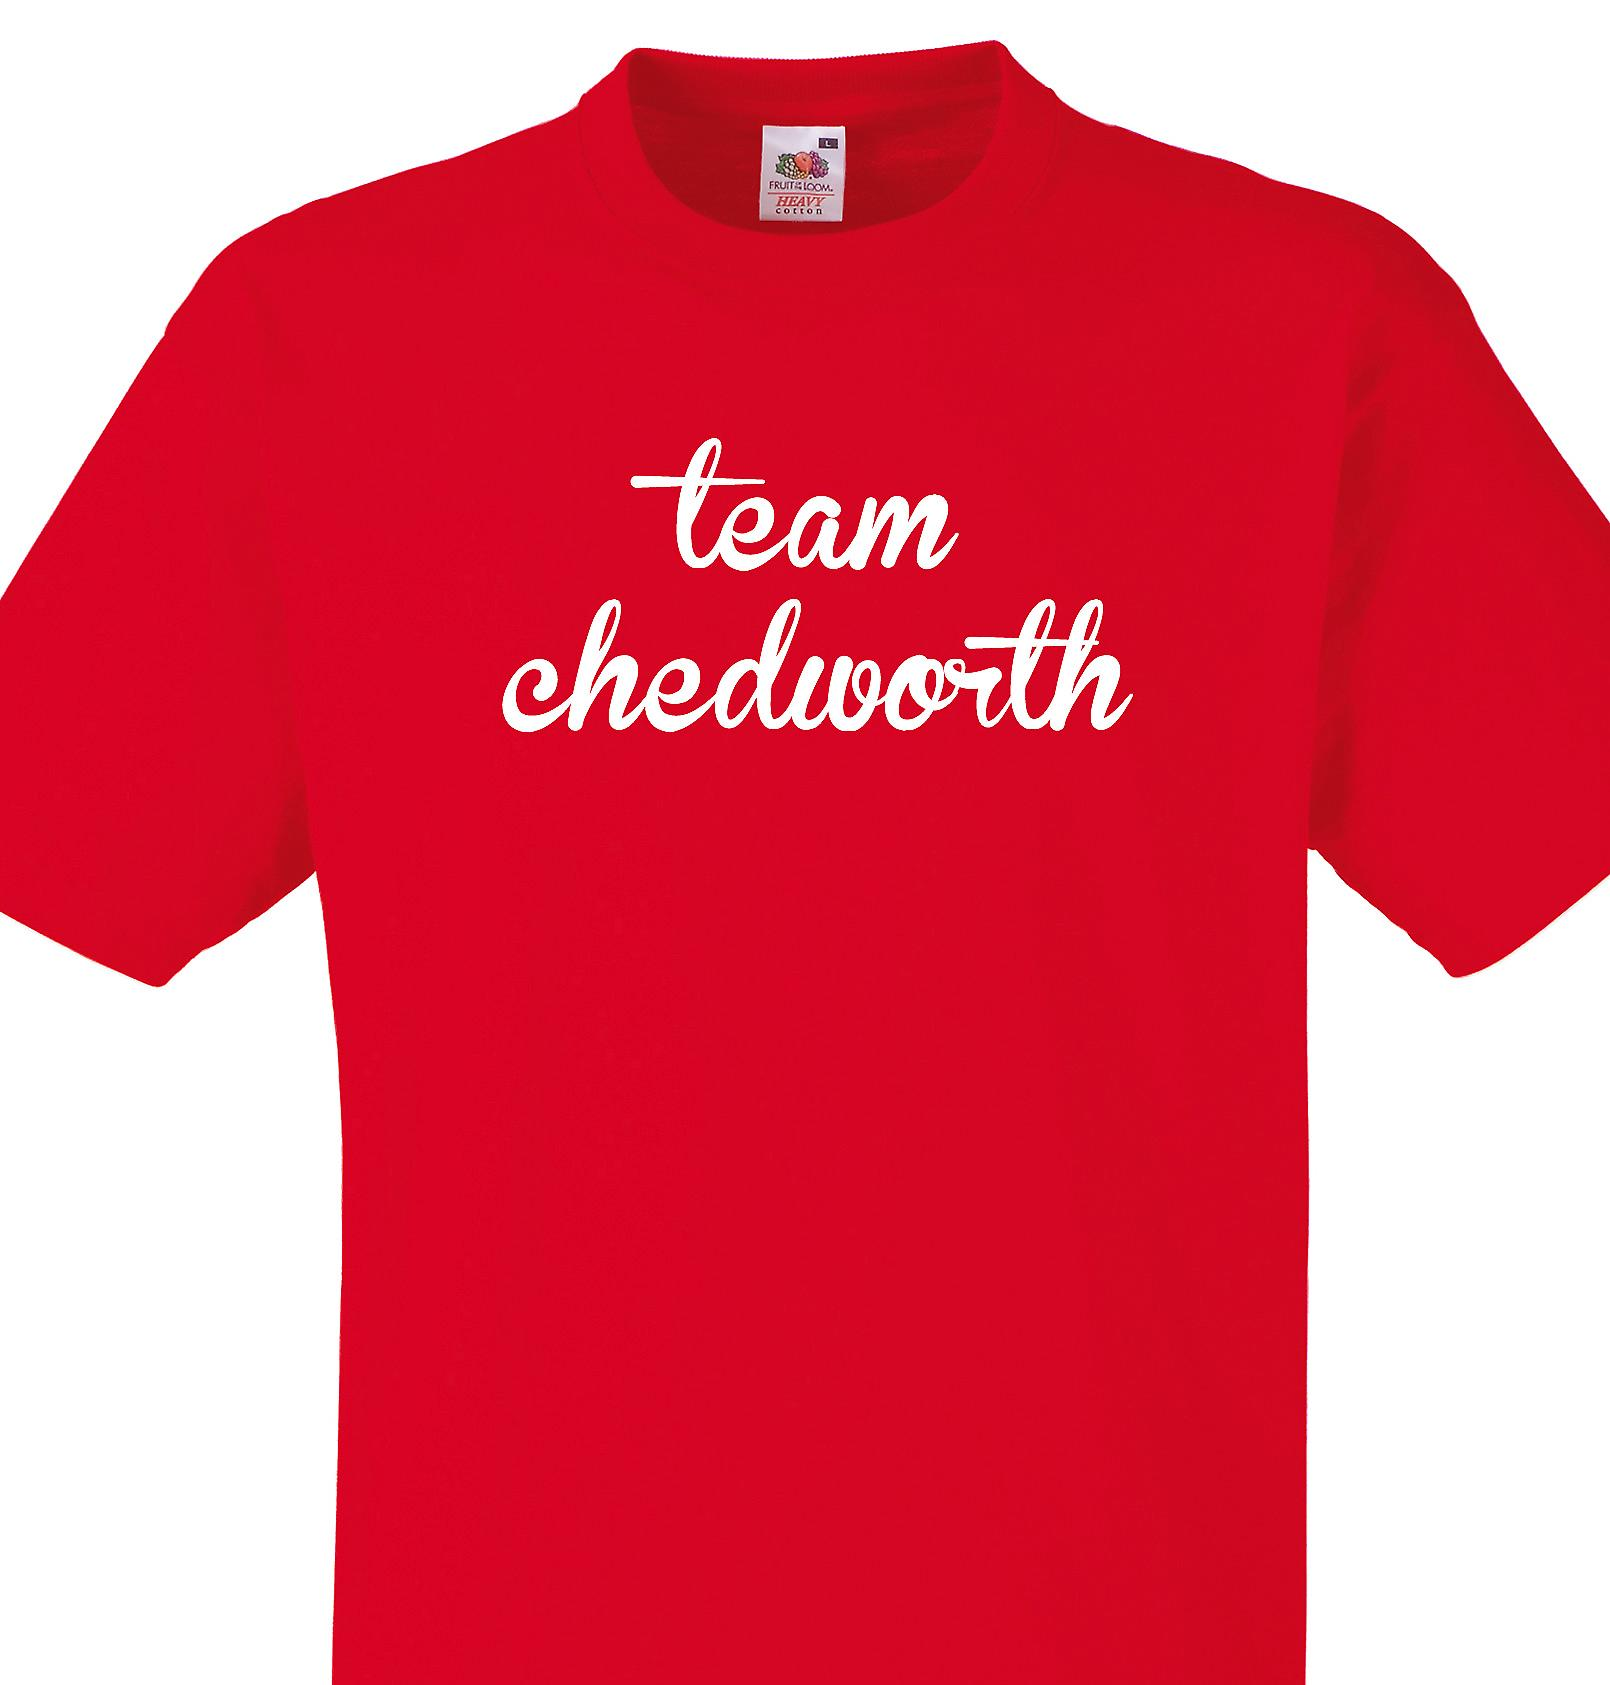 Team Chedworth Red T shirt